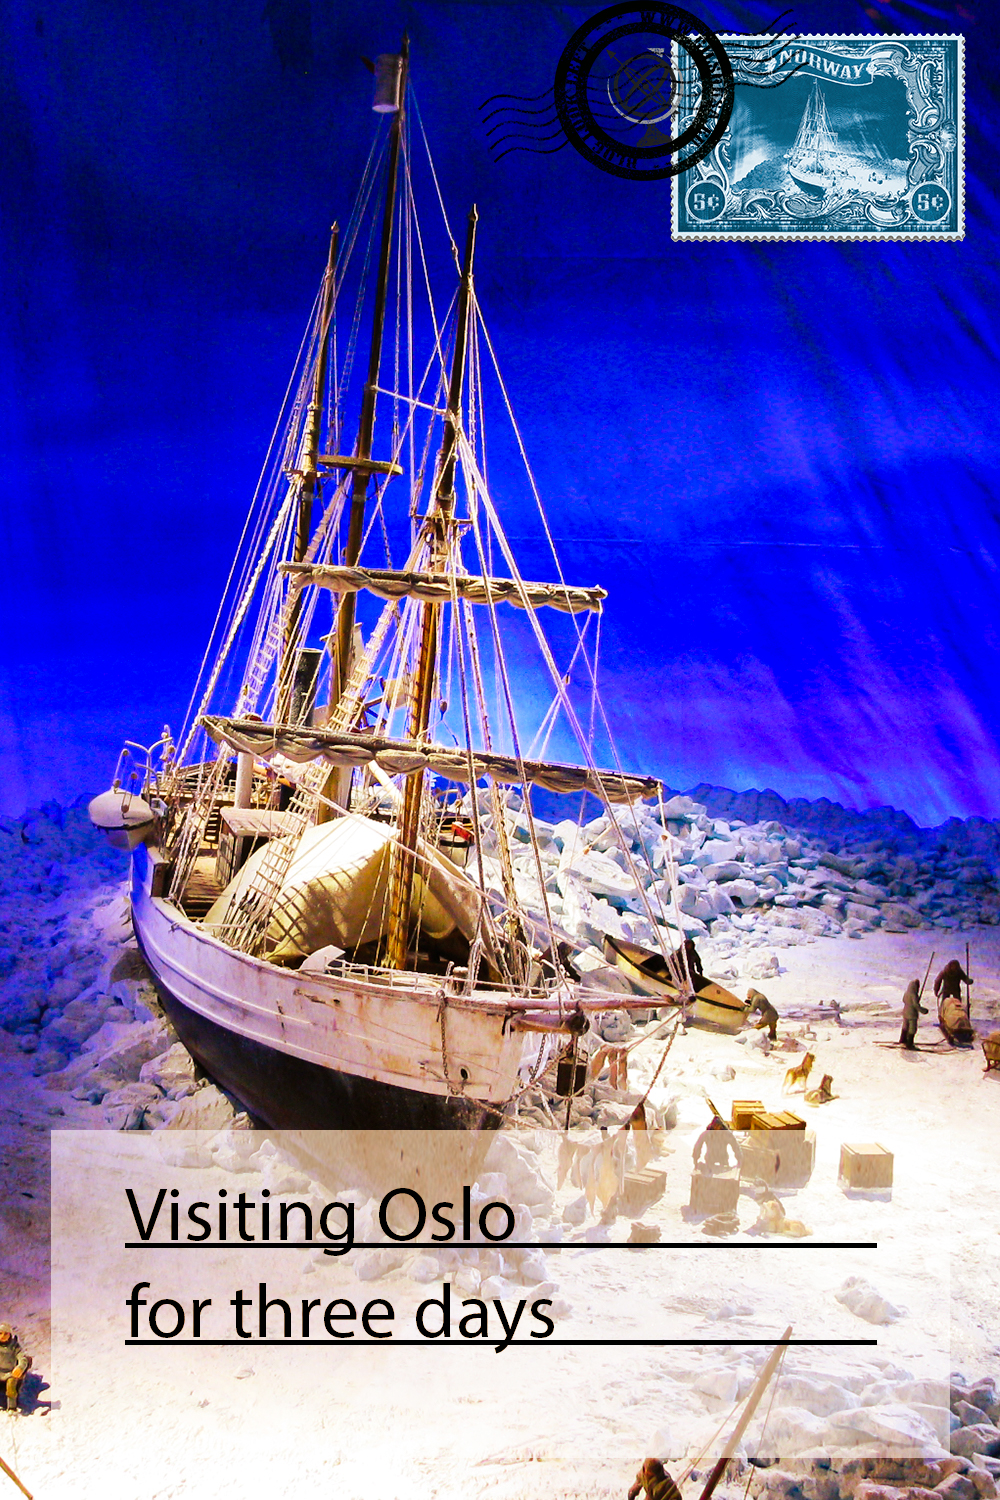 Visiting Oslo for three days